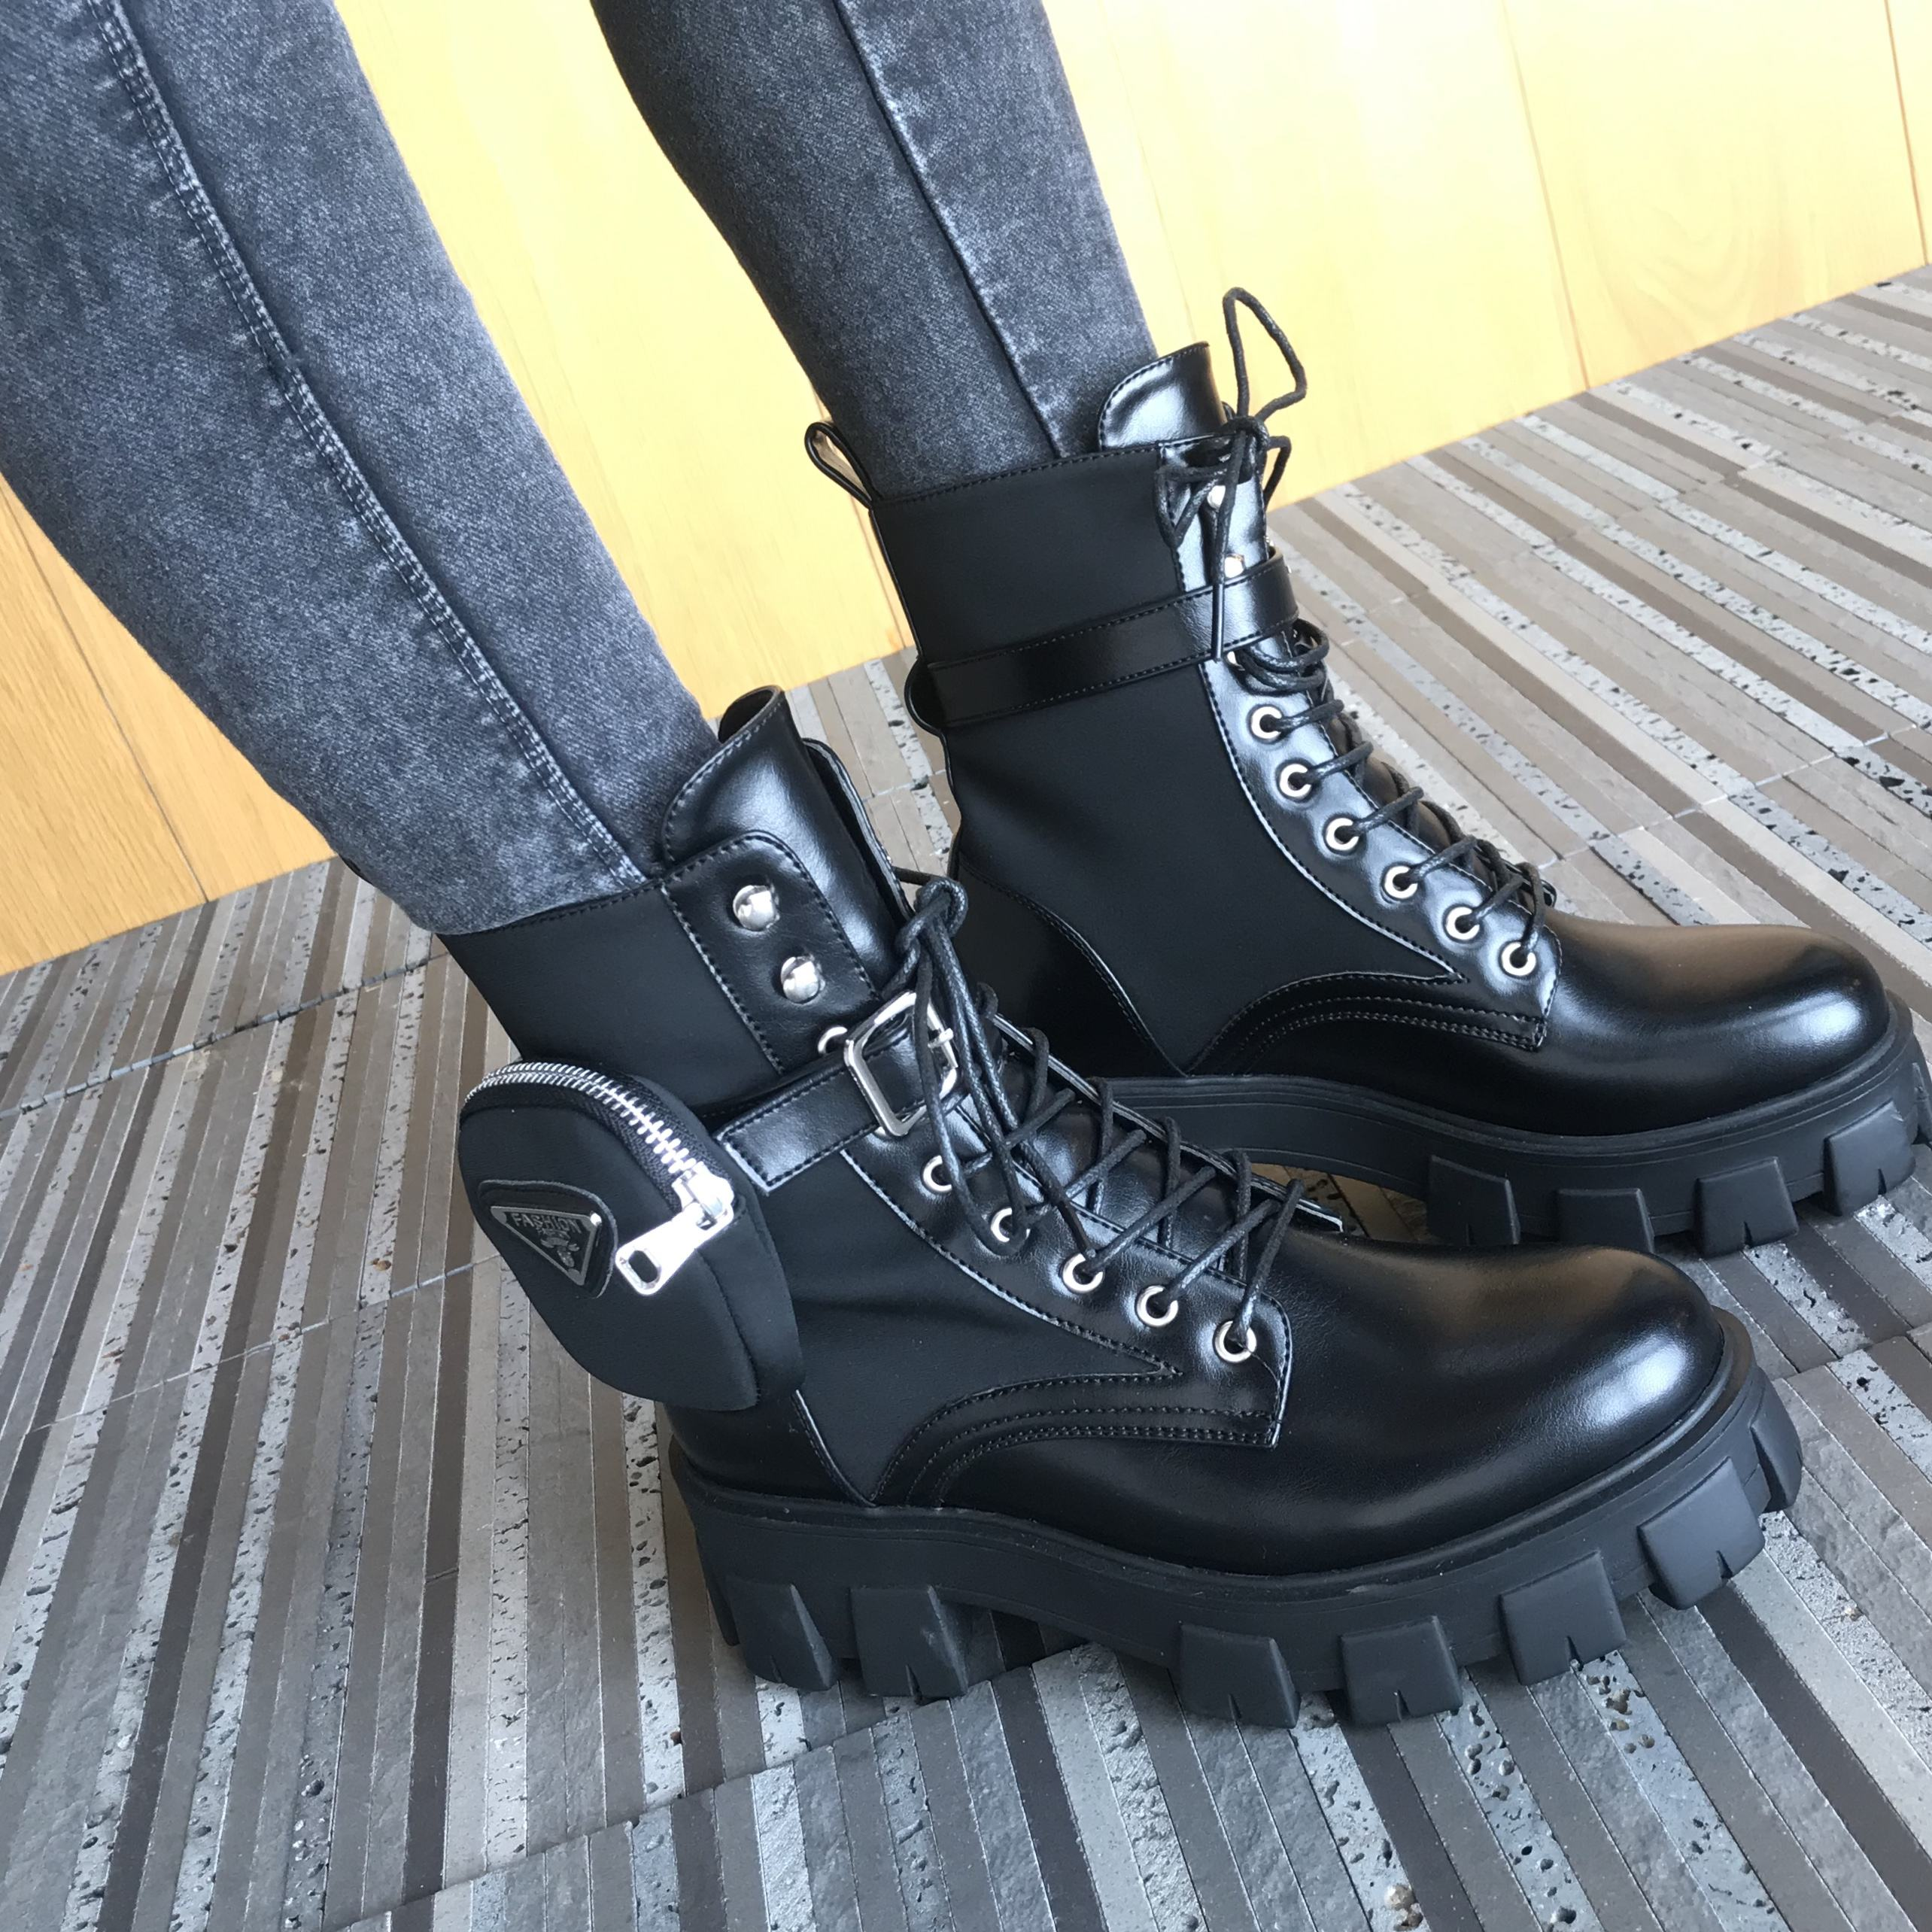 2020 new design fashion boots with pocket lace up mid calf women boots popular female shoes